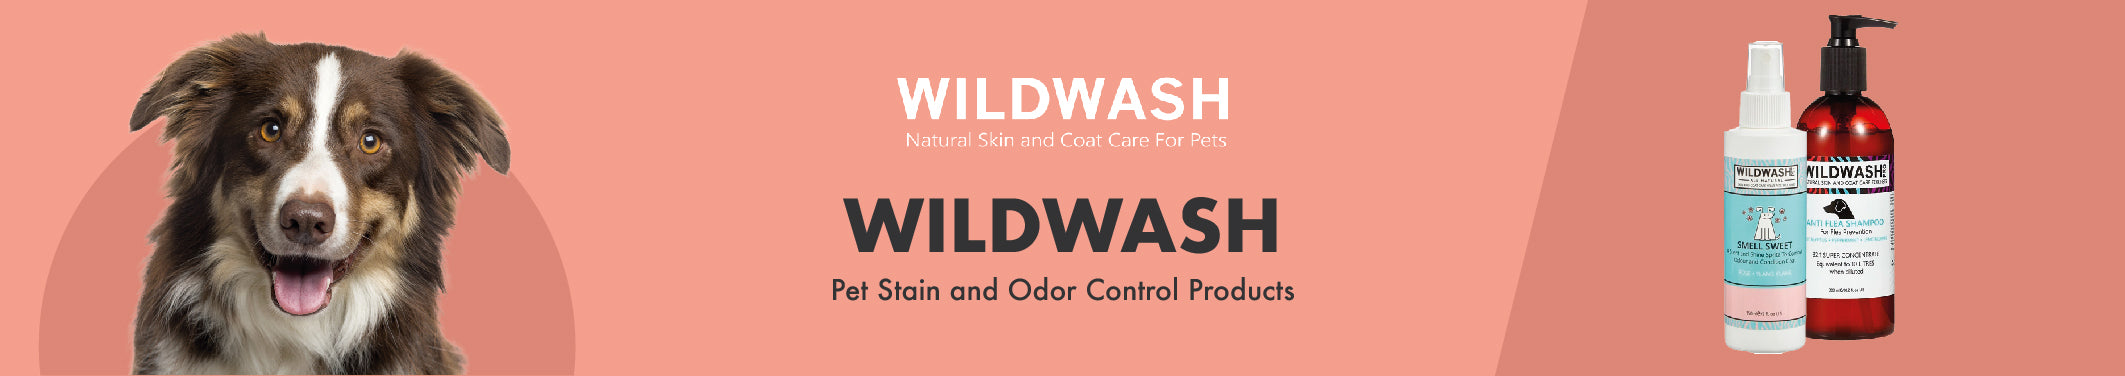 Wildwash Pet Stain and Odor Remover